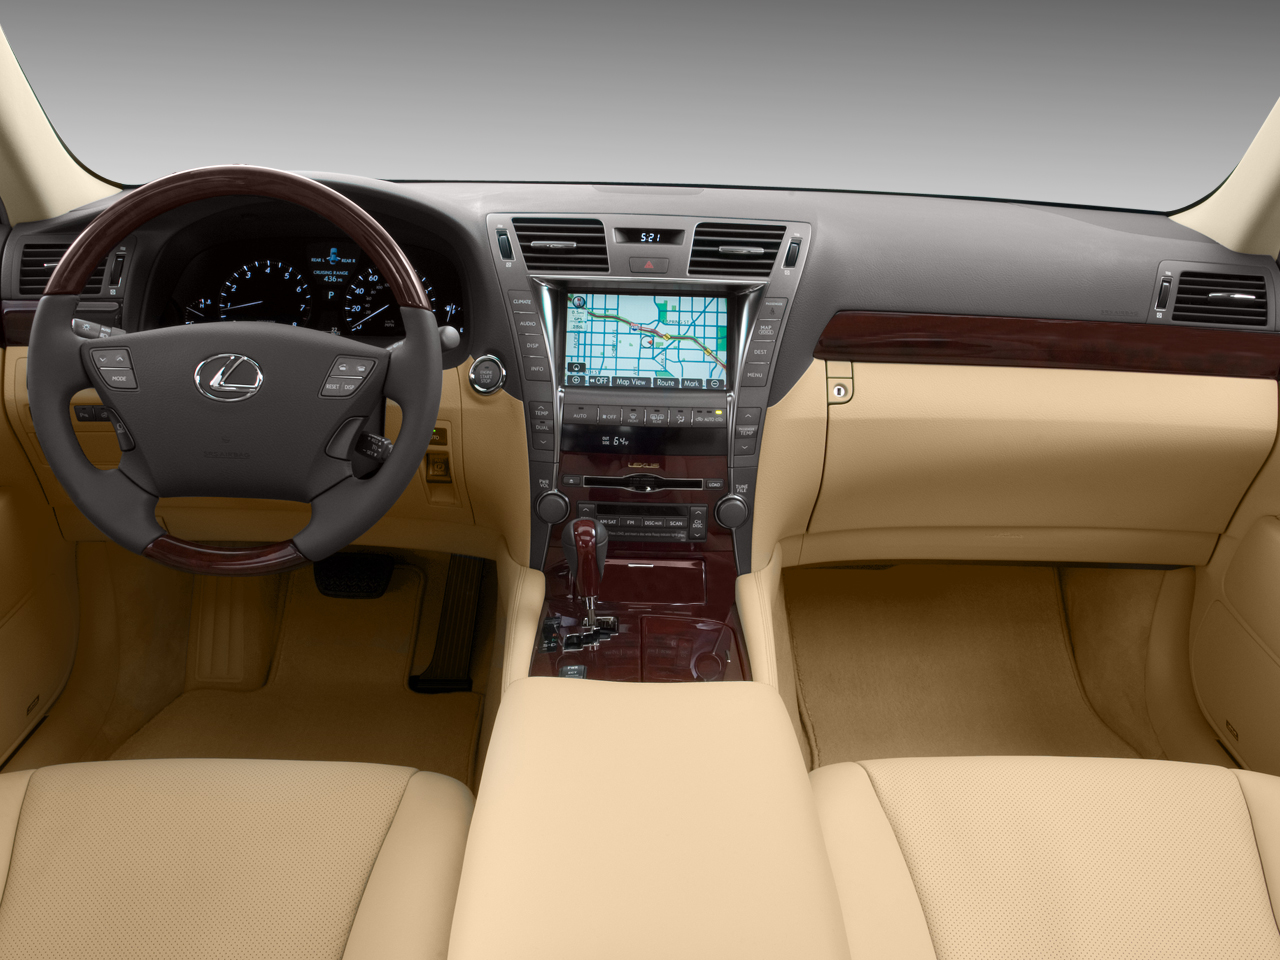 https://st.automobilemag.com/uploads/sites/10/2015/11/2007-lexus-ls-460-luxury-sedan-dashboard.png